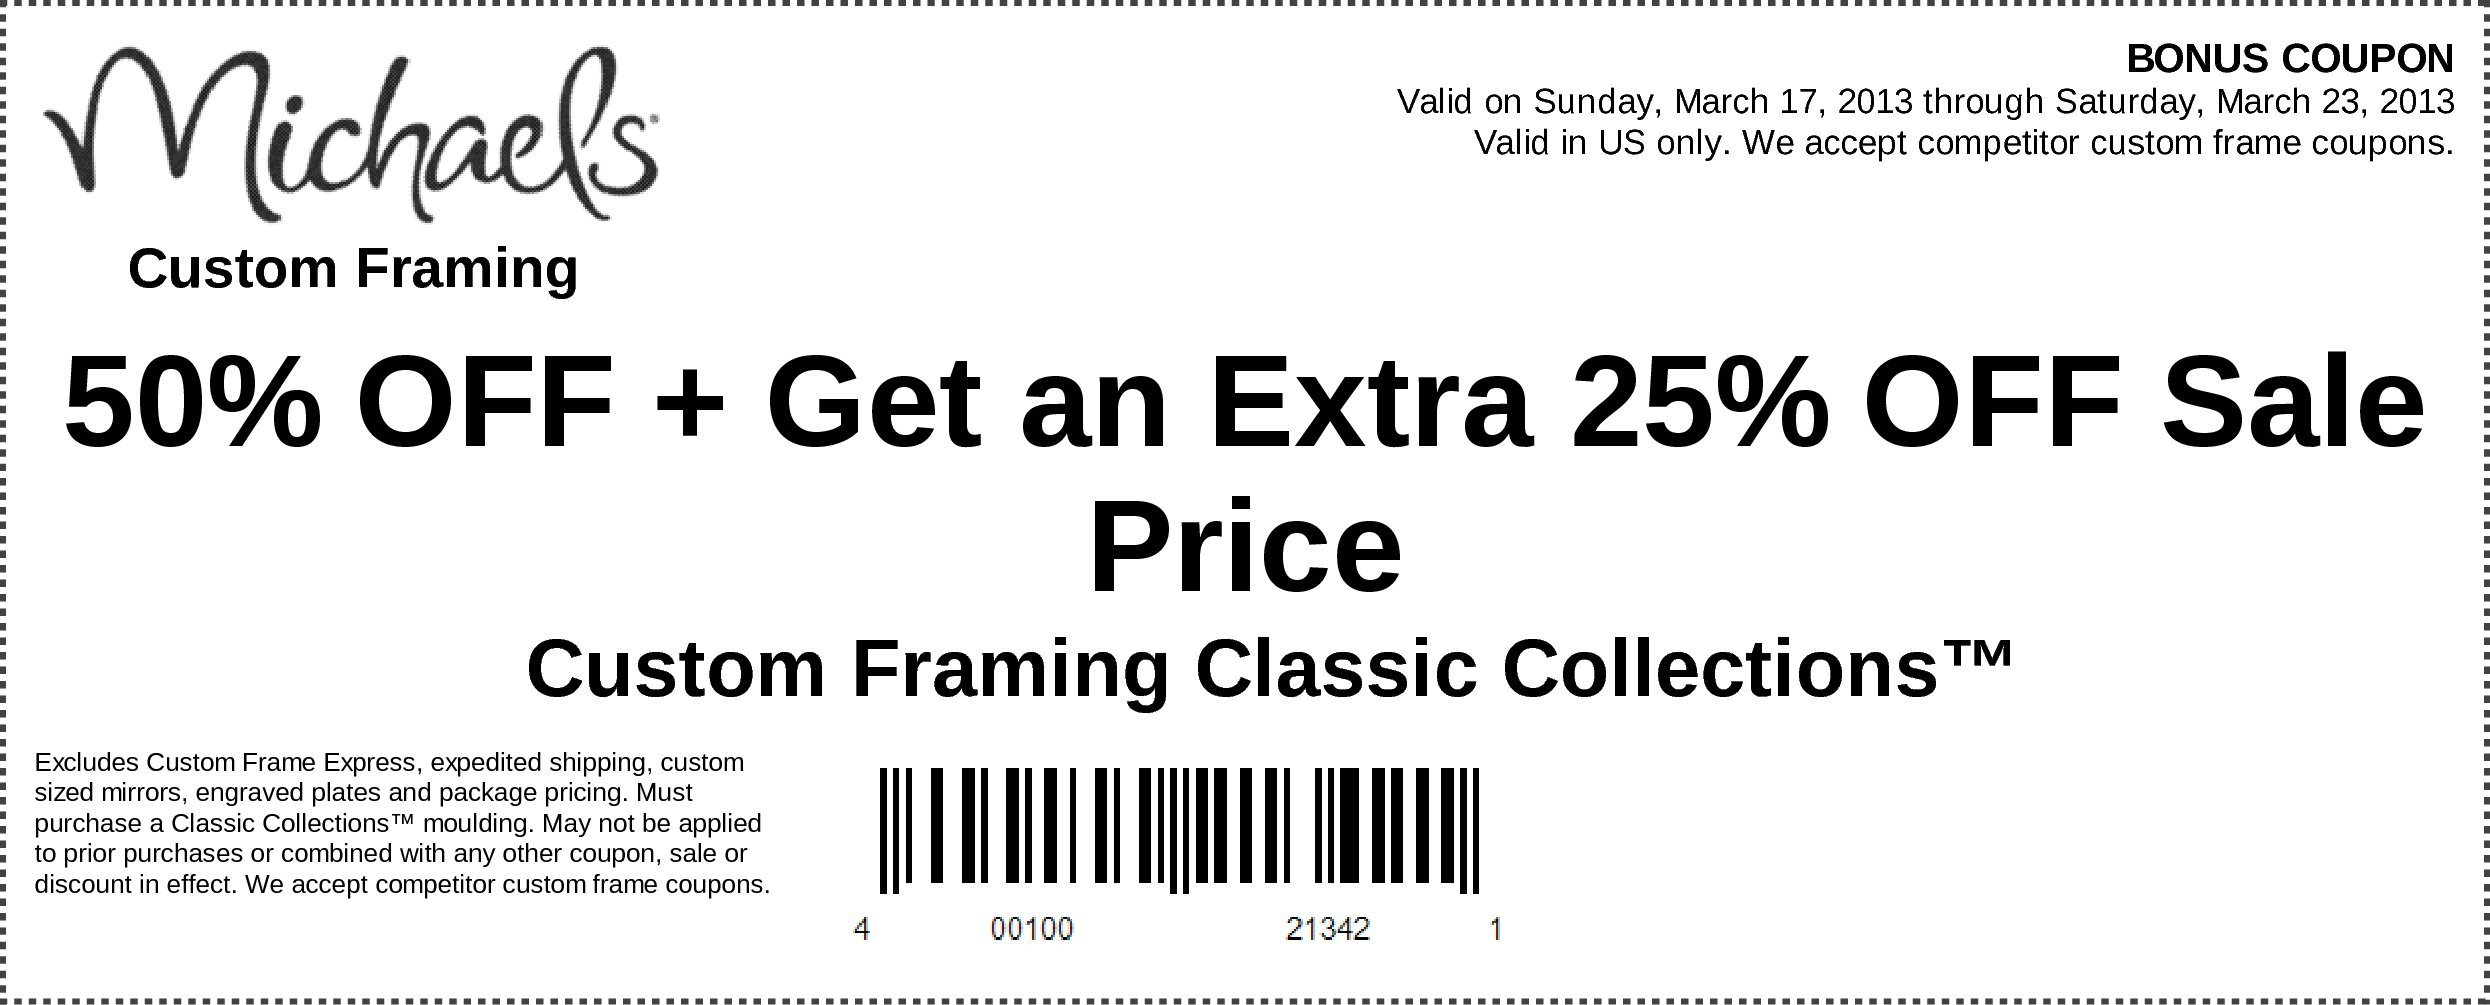 Click to apply coupon code to cart: HOLIDAY40W. VALID THRU SAT 12/15/ Online buy online pick up in store orders only. Excludes doorbusters. Excludes Everyday Value program. Additional coupon .